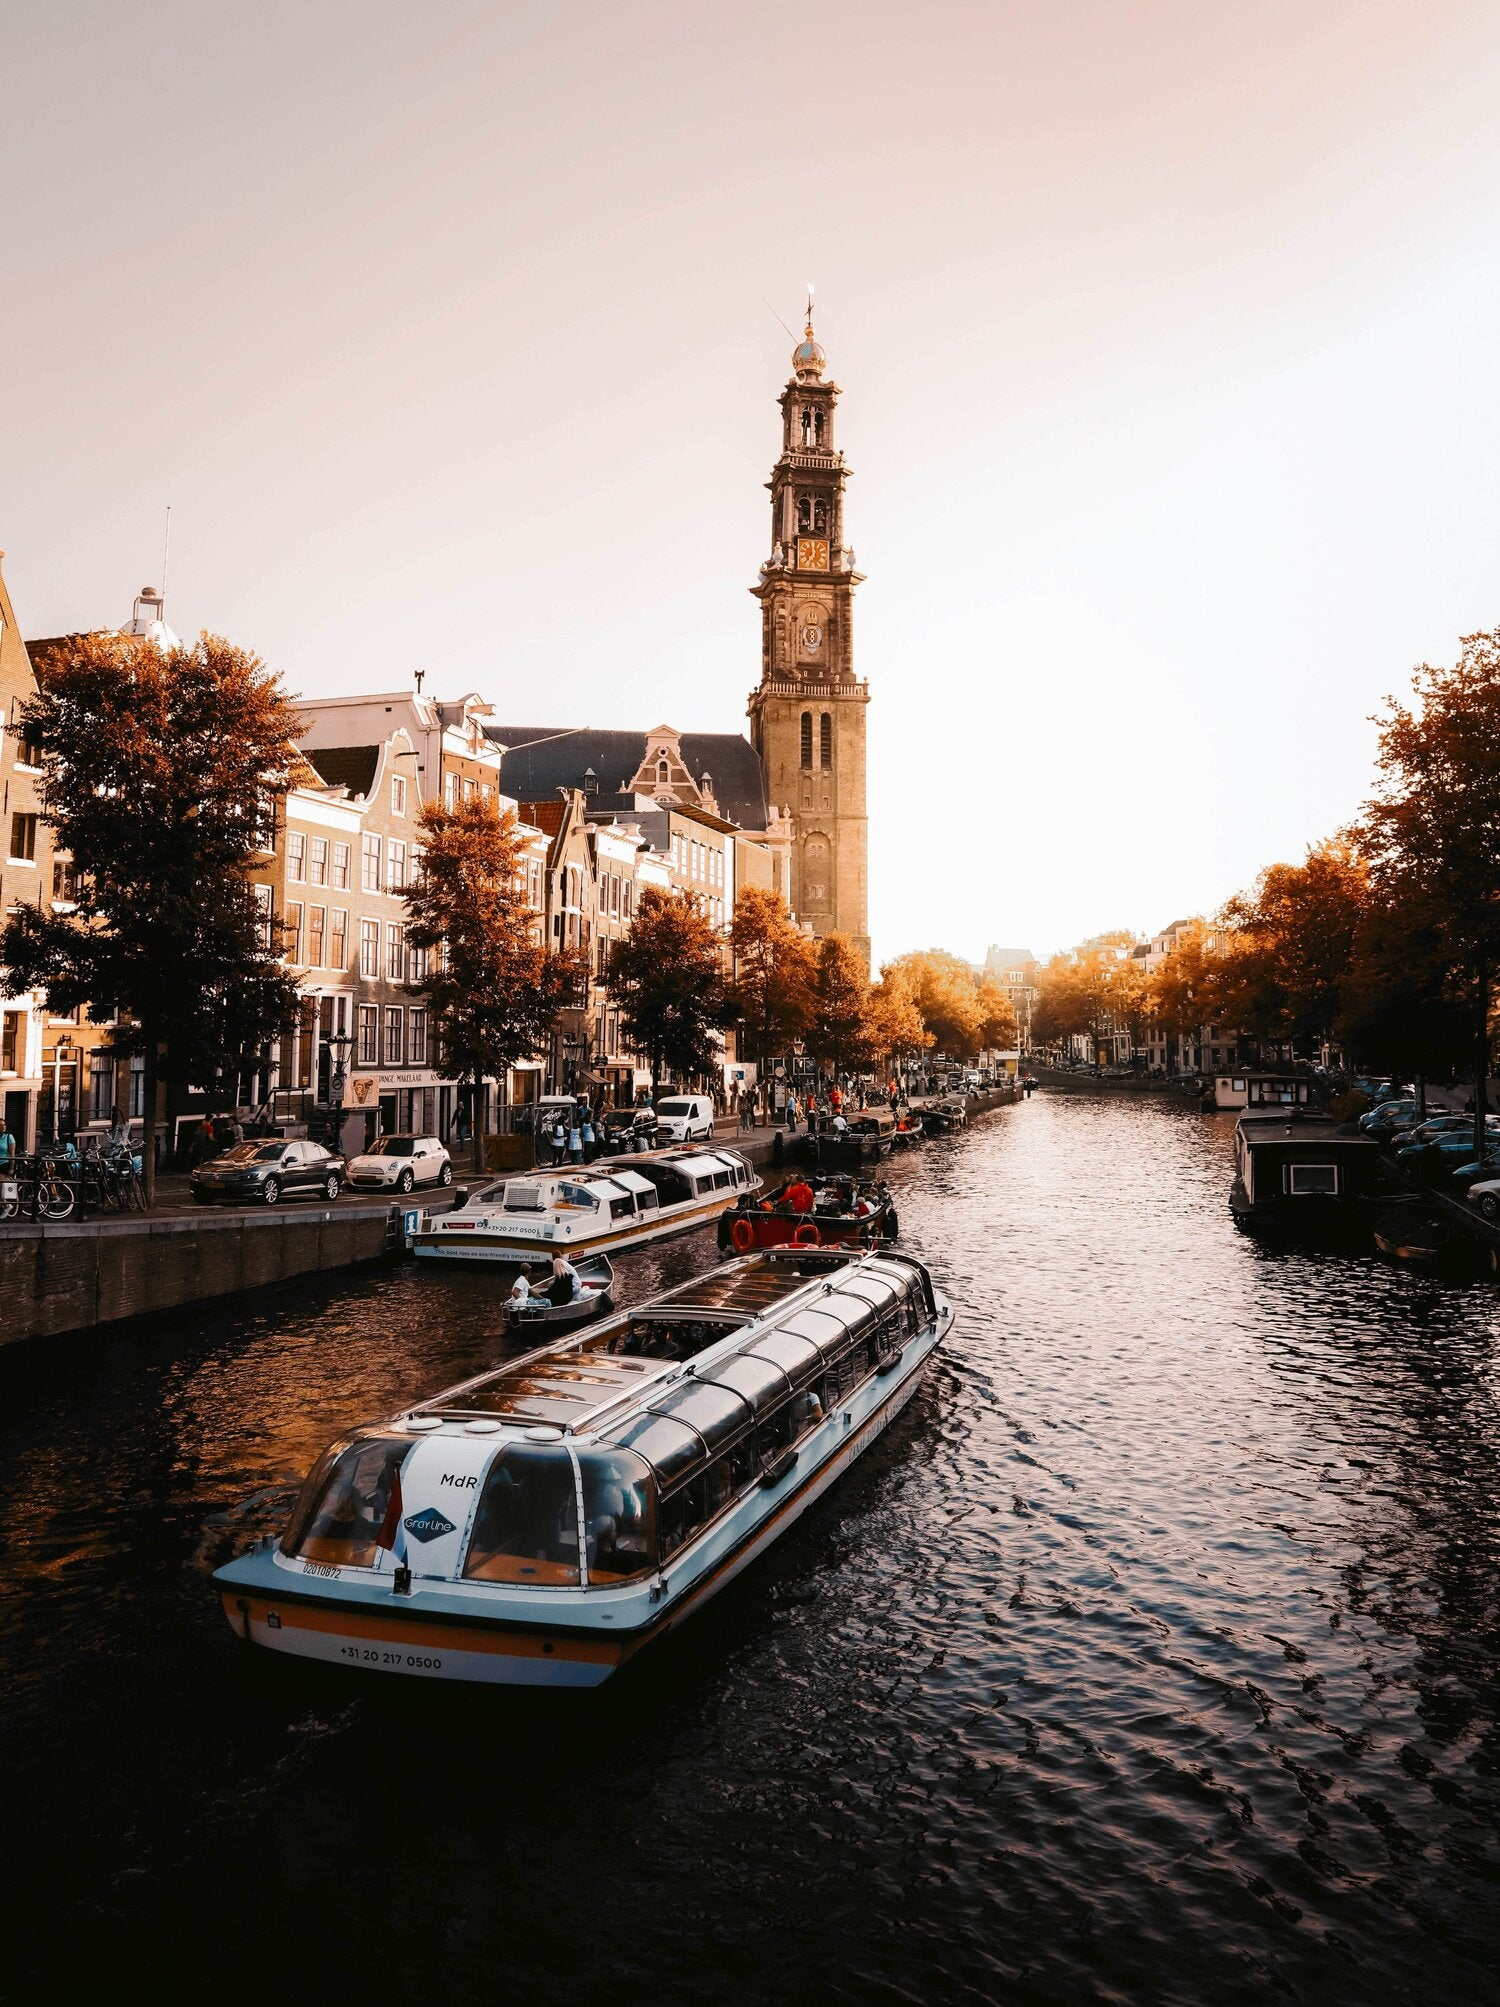 Amsterdam canal at sunset in Autumn